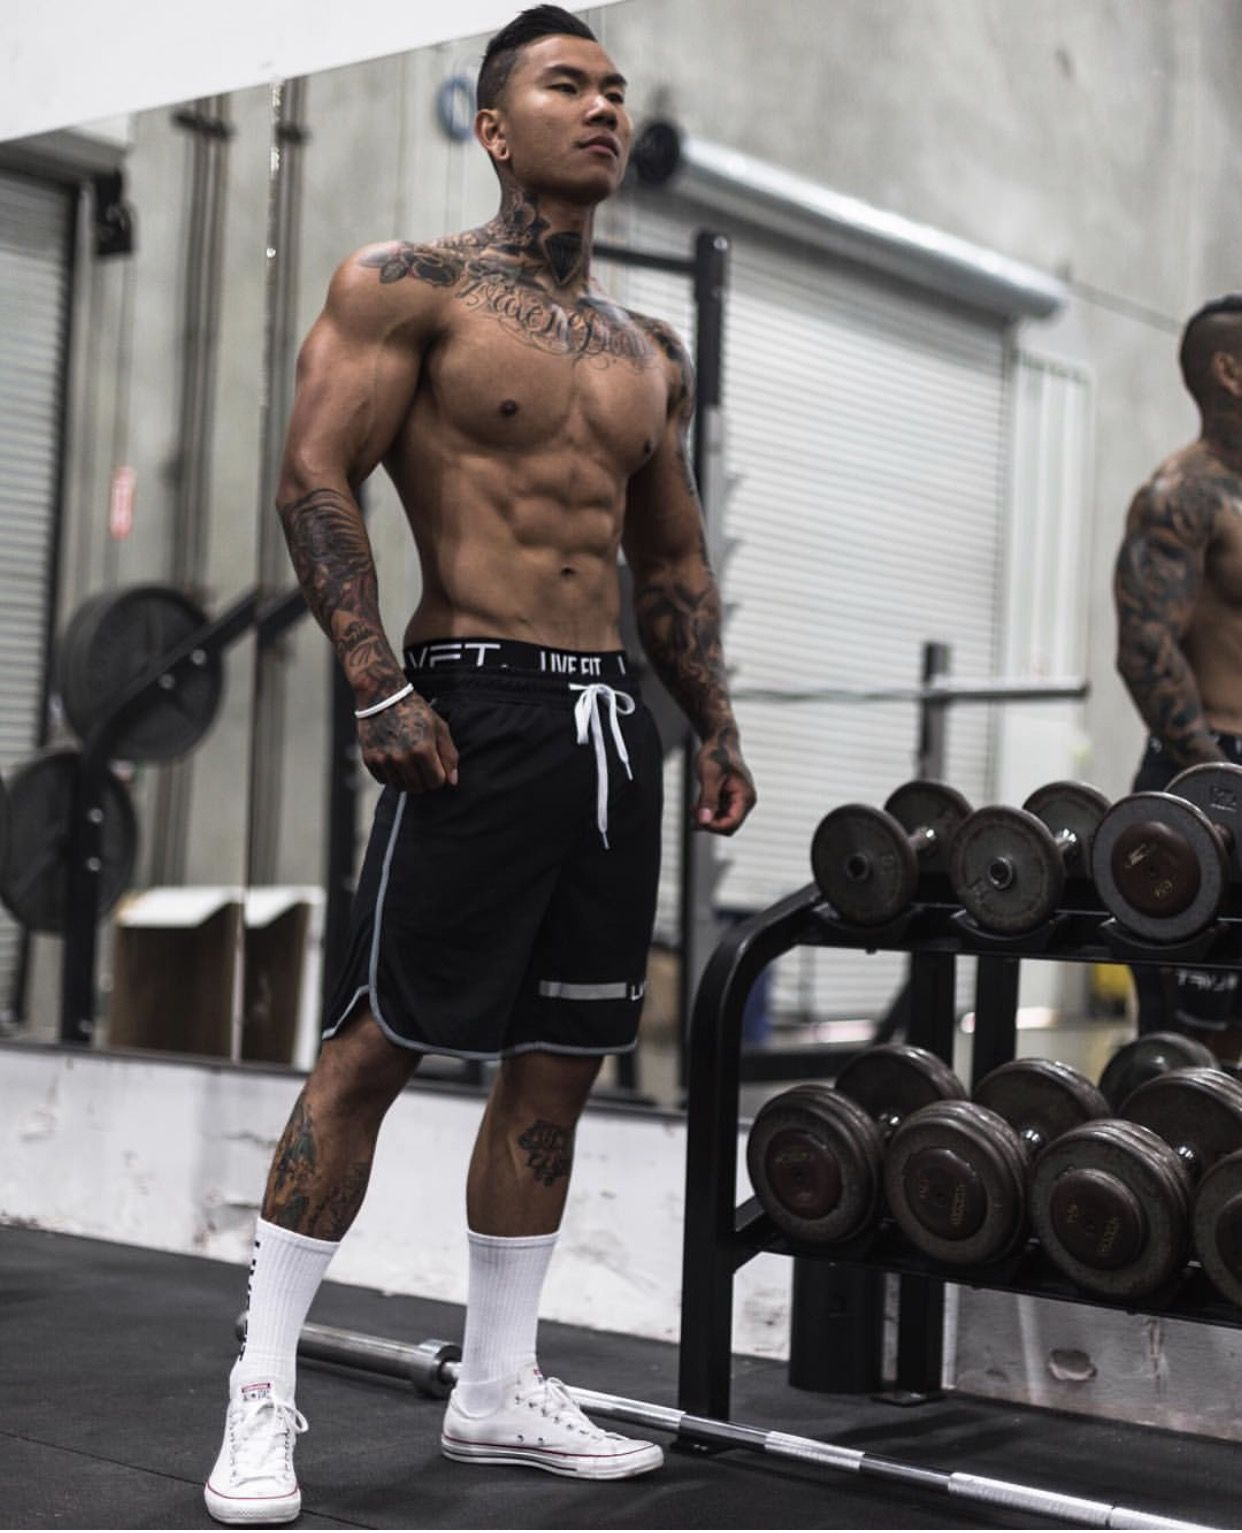 muscle guys in tats in gym